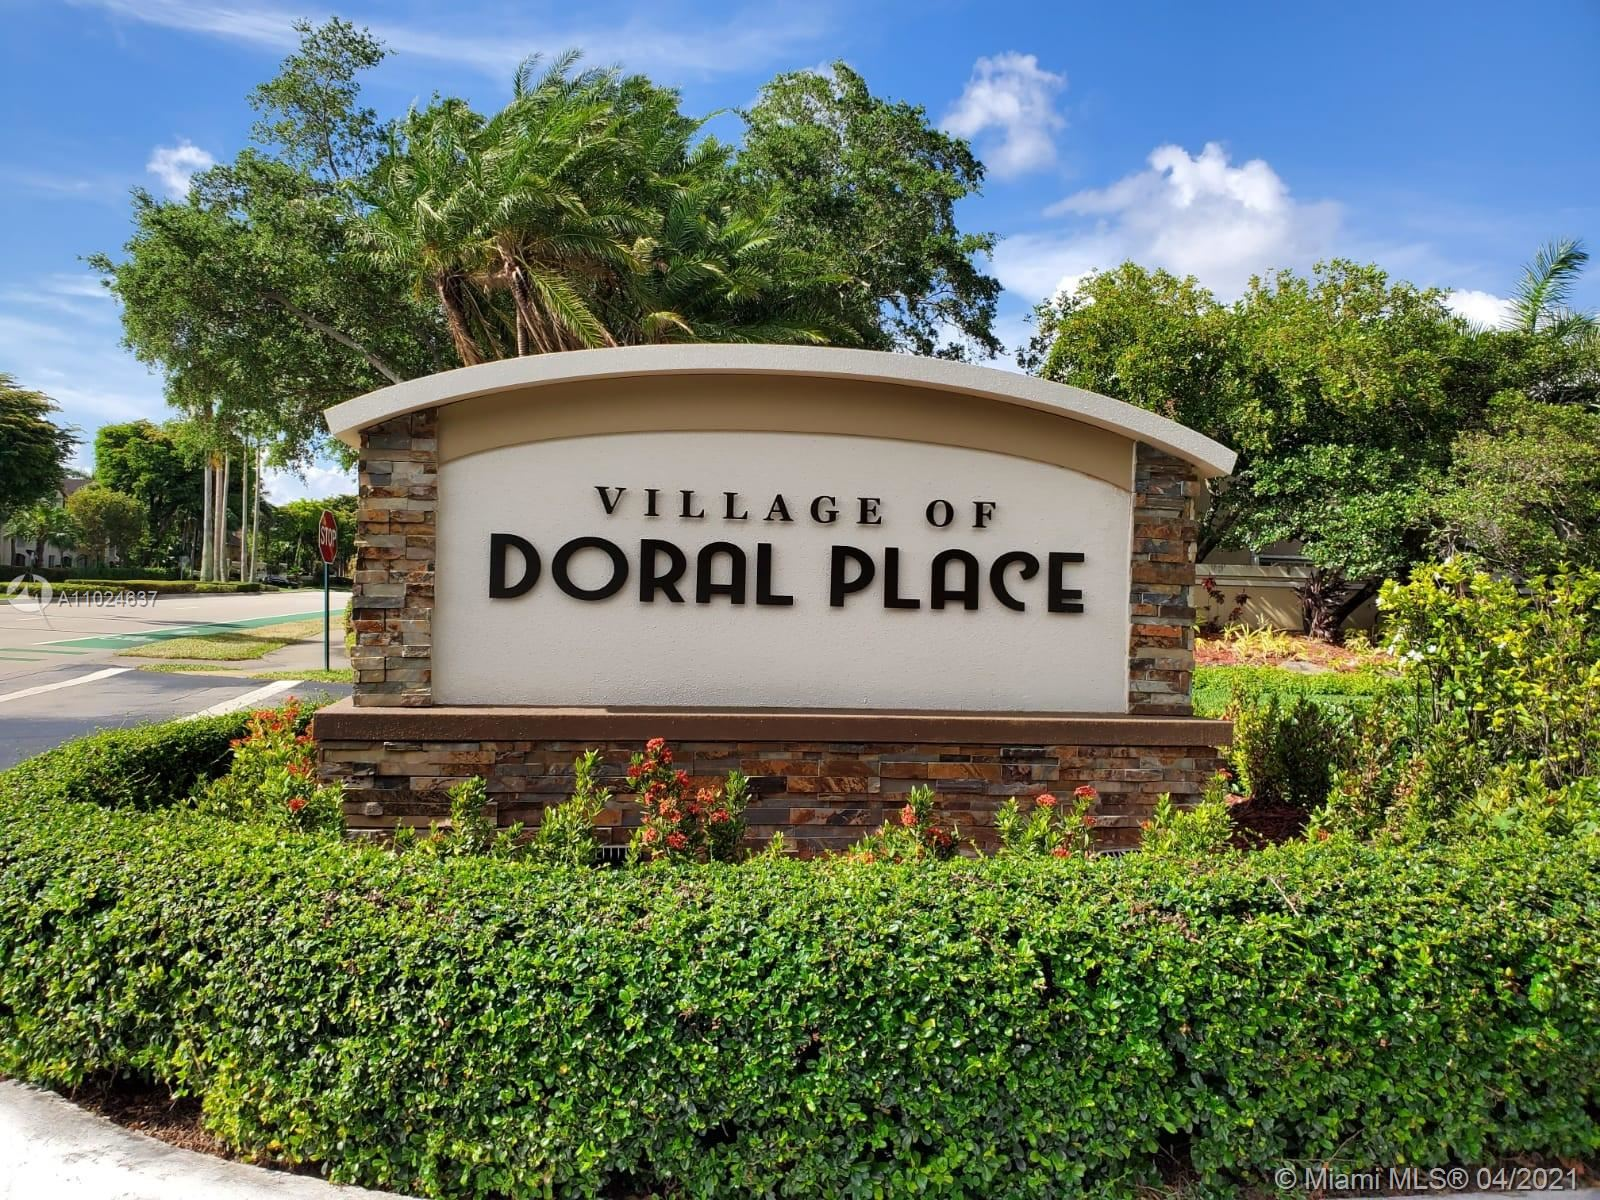 4750 NW 102nd Ave #102-17, Doral, FL 33178 - #: A11024637